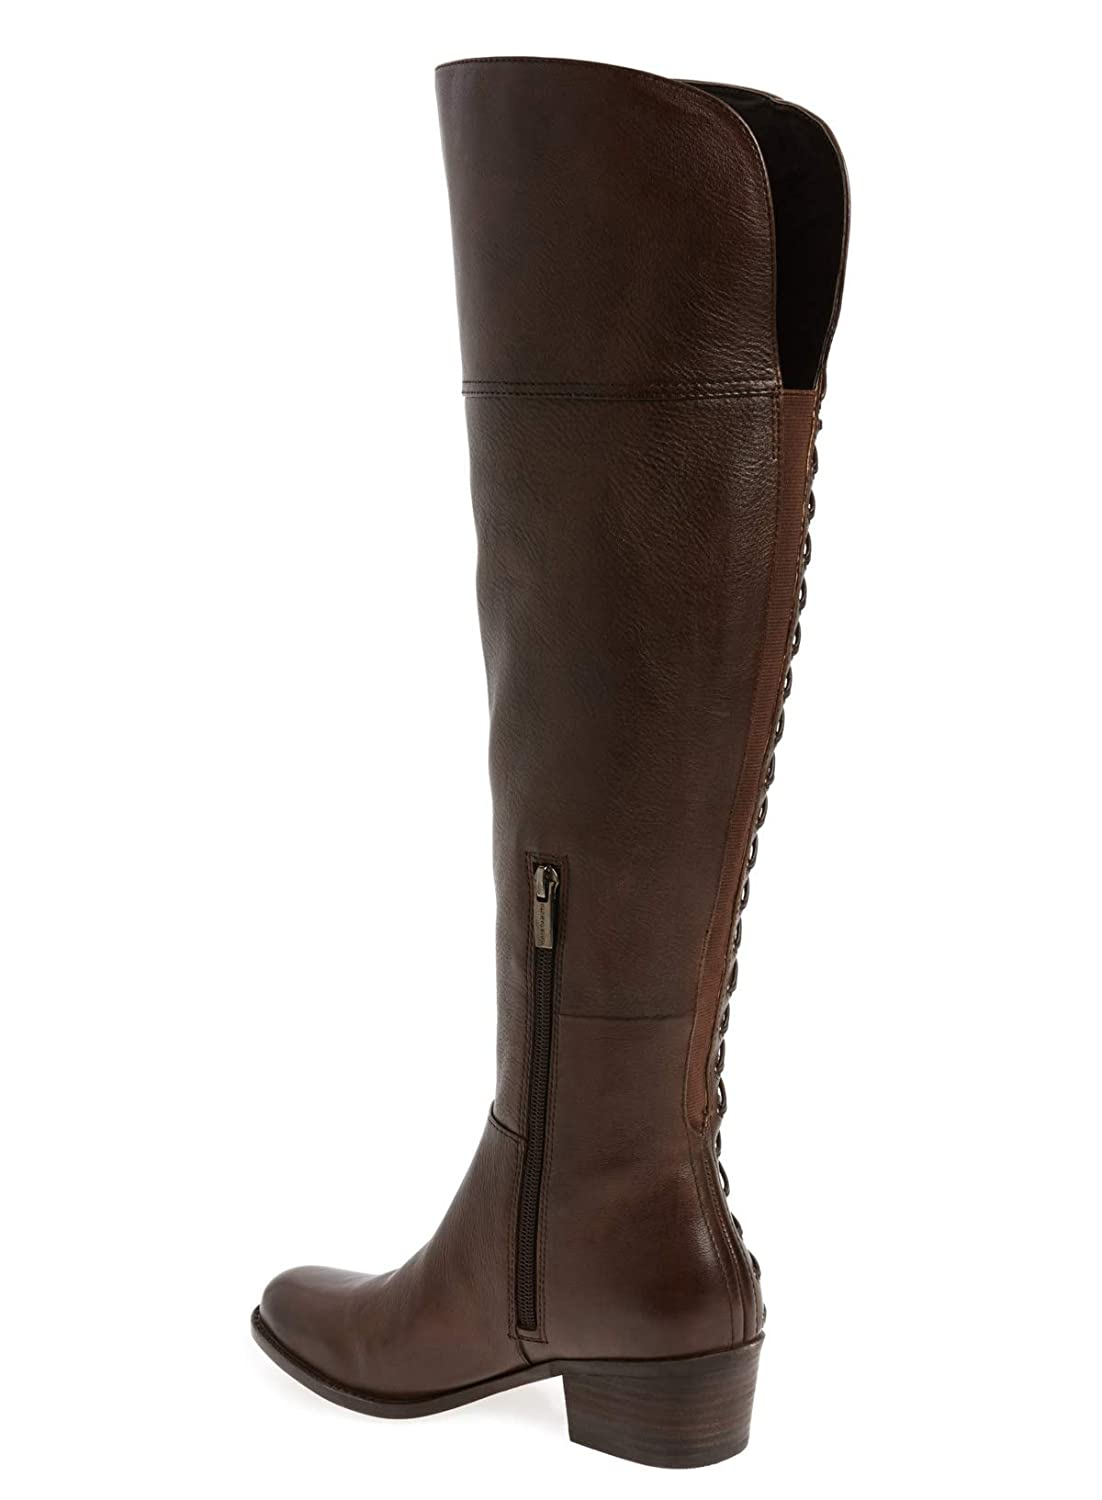 Vince Camuto Womens BESTAN Over The Over The Knee Boot VC-BESTAN